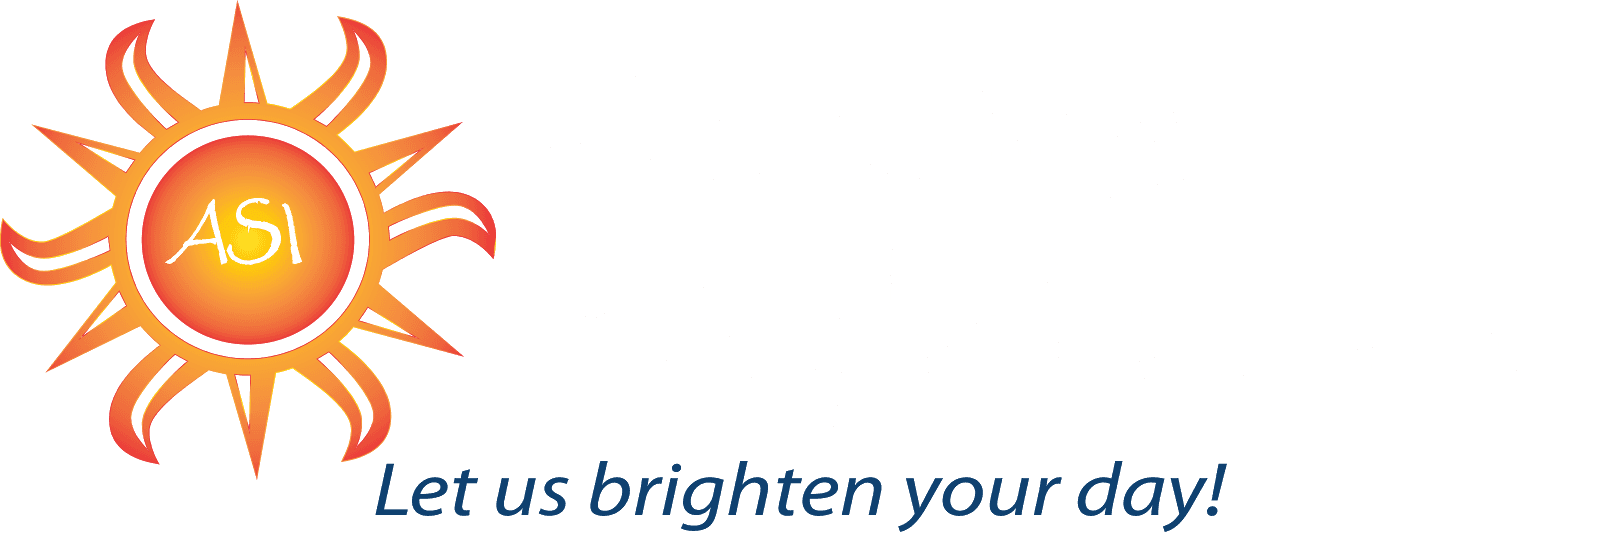 Amazing Skylights, Inc